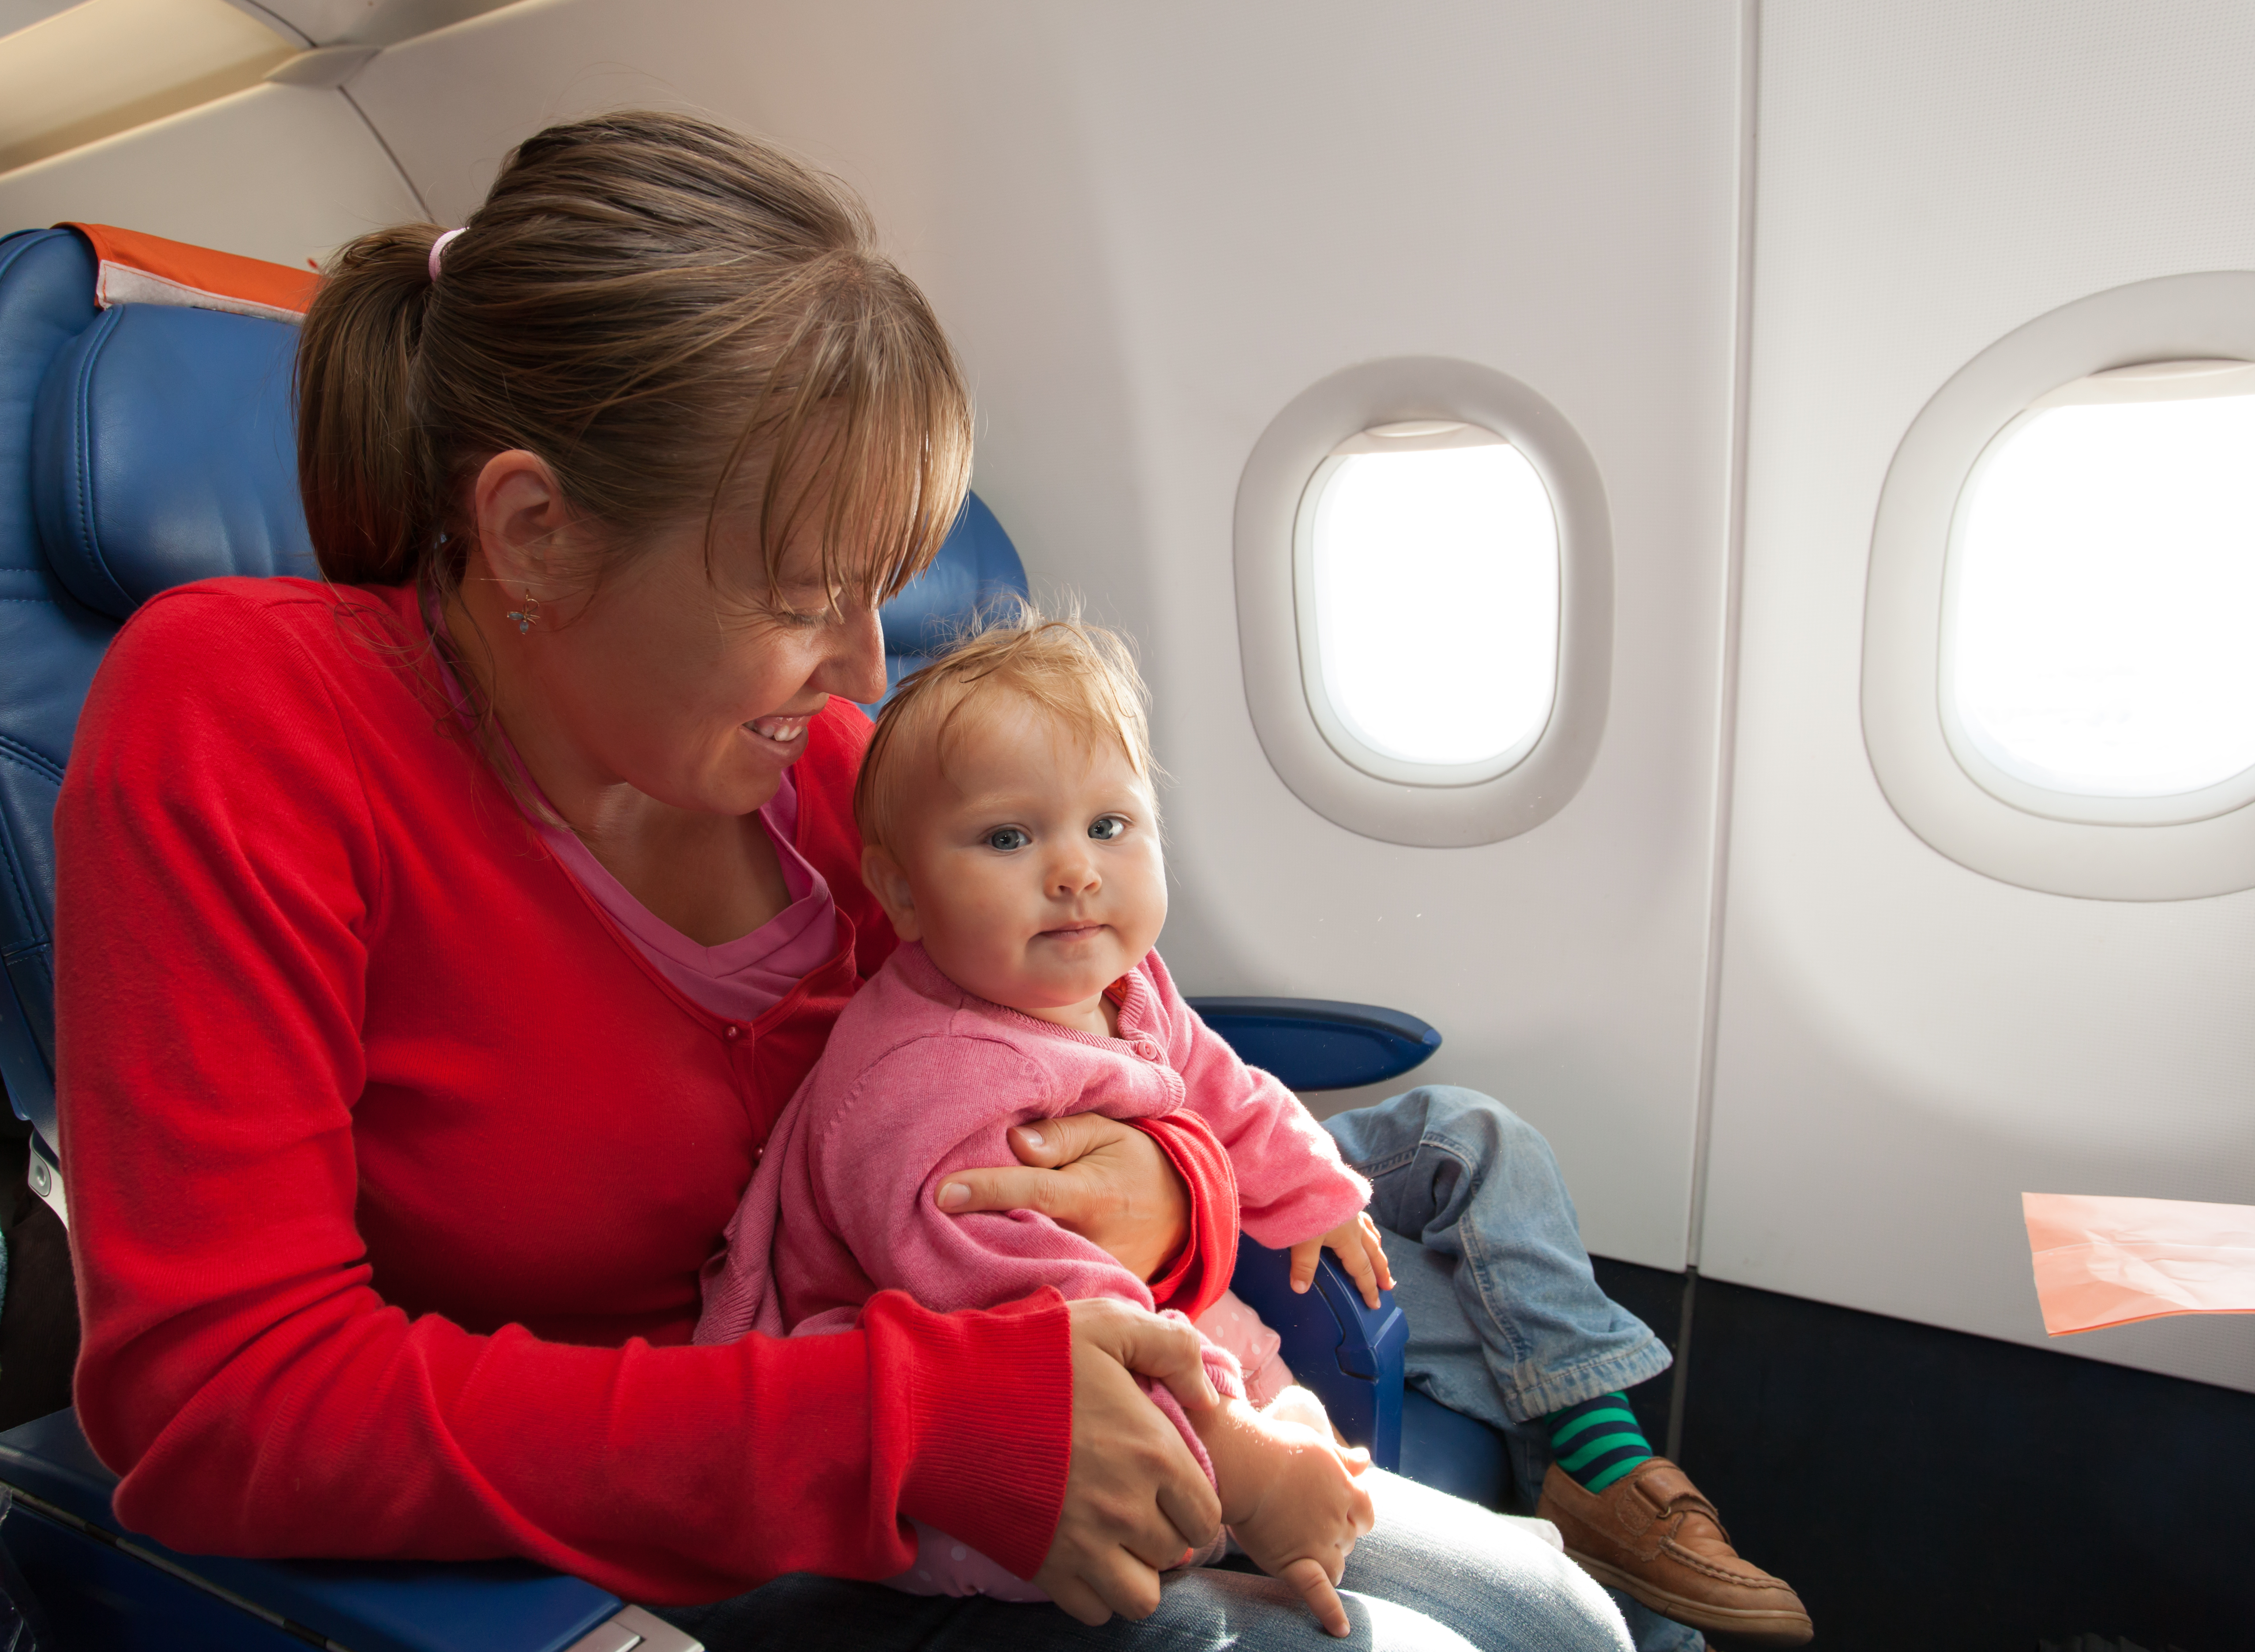 mother and little daughter travel by plane